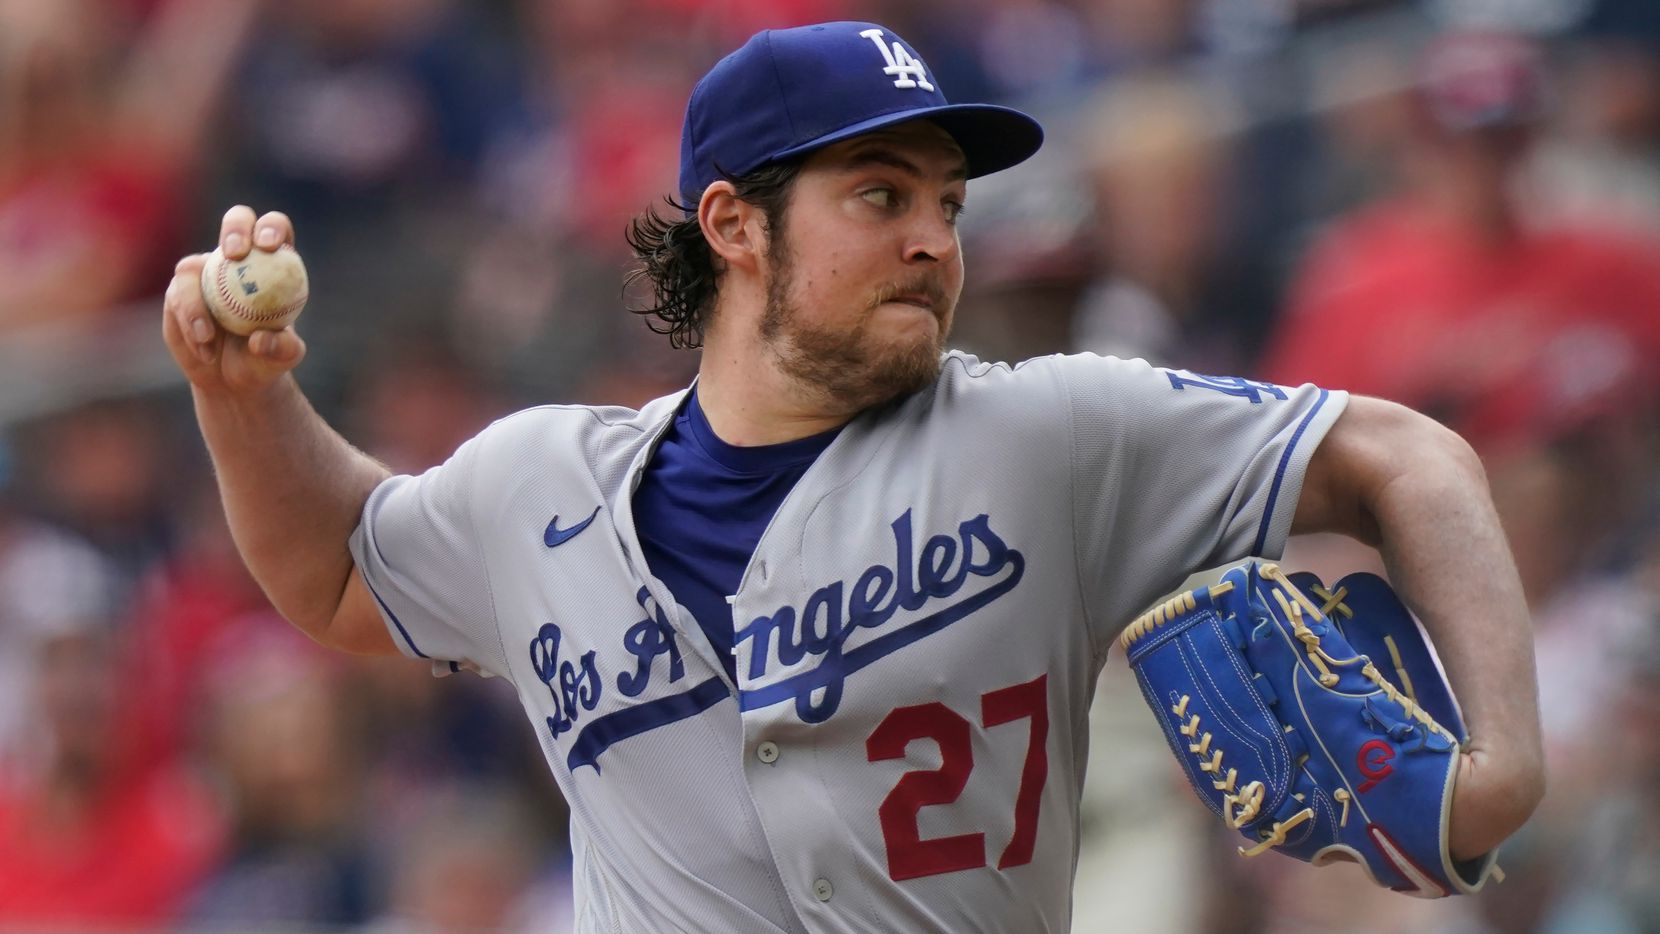 Los Angeles Dodgers starting pitcher Trevor Bauer (27) delivers in the first inning of a baseball game against the Atlanta Braves on Sunday, June 6, 2021, in Atlanta.